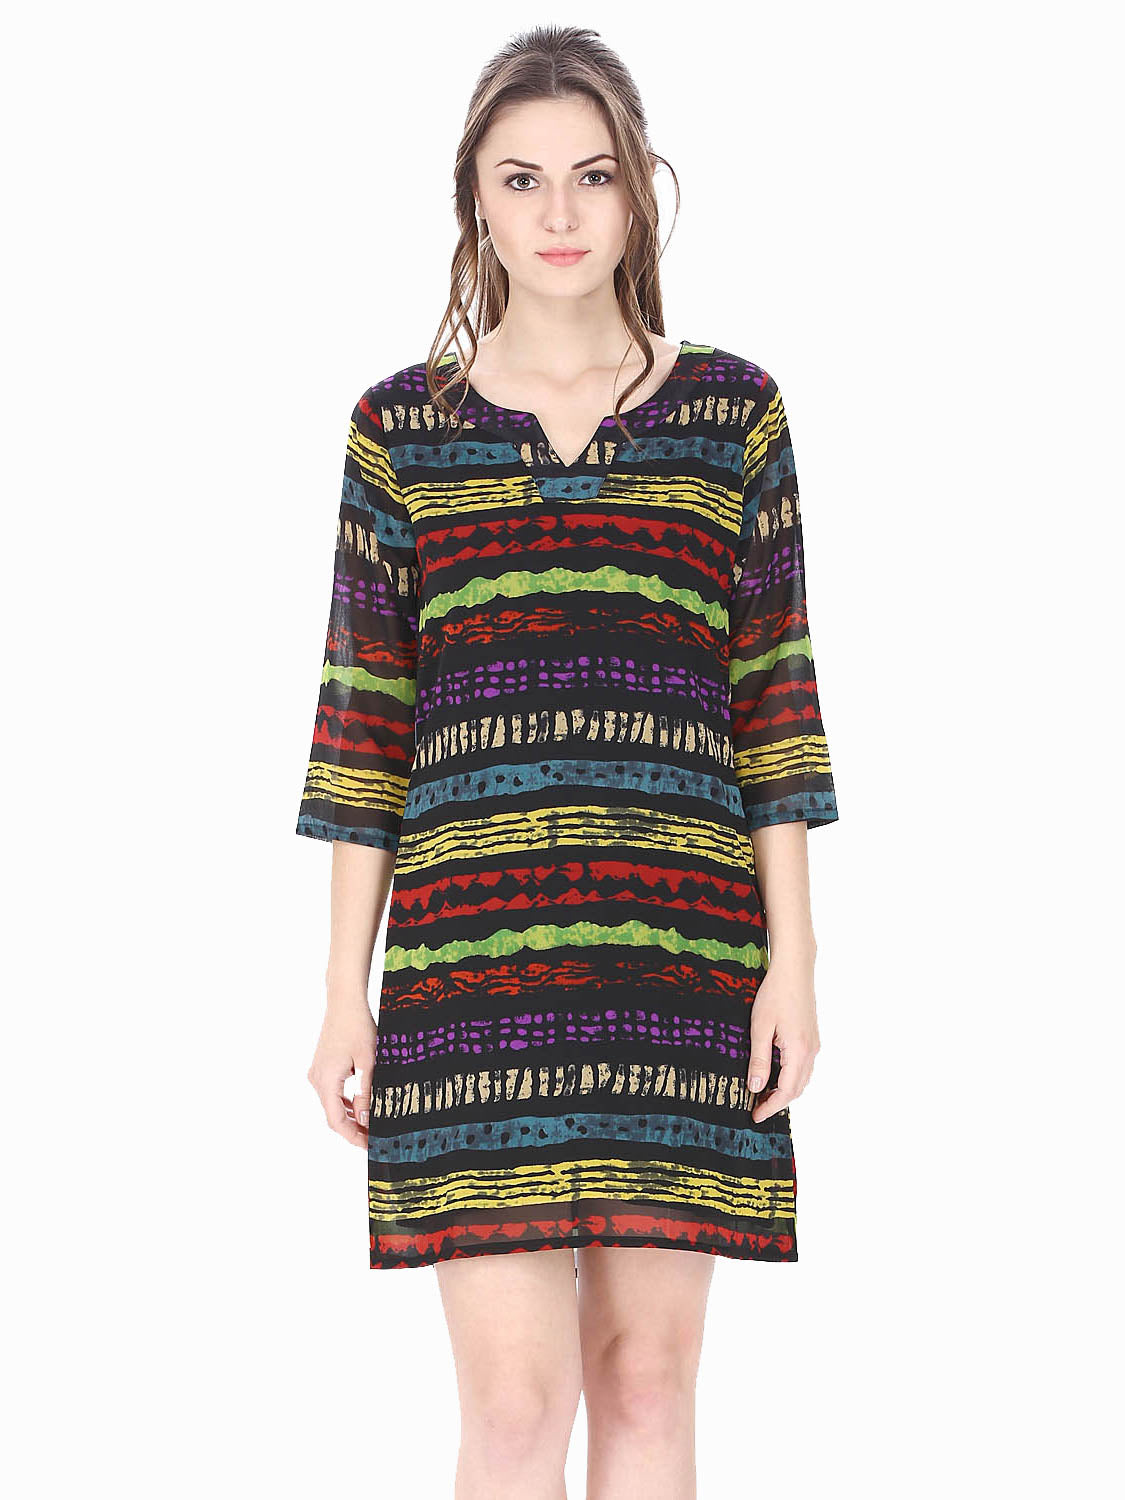 Into the Print A-line Dress